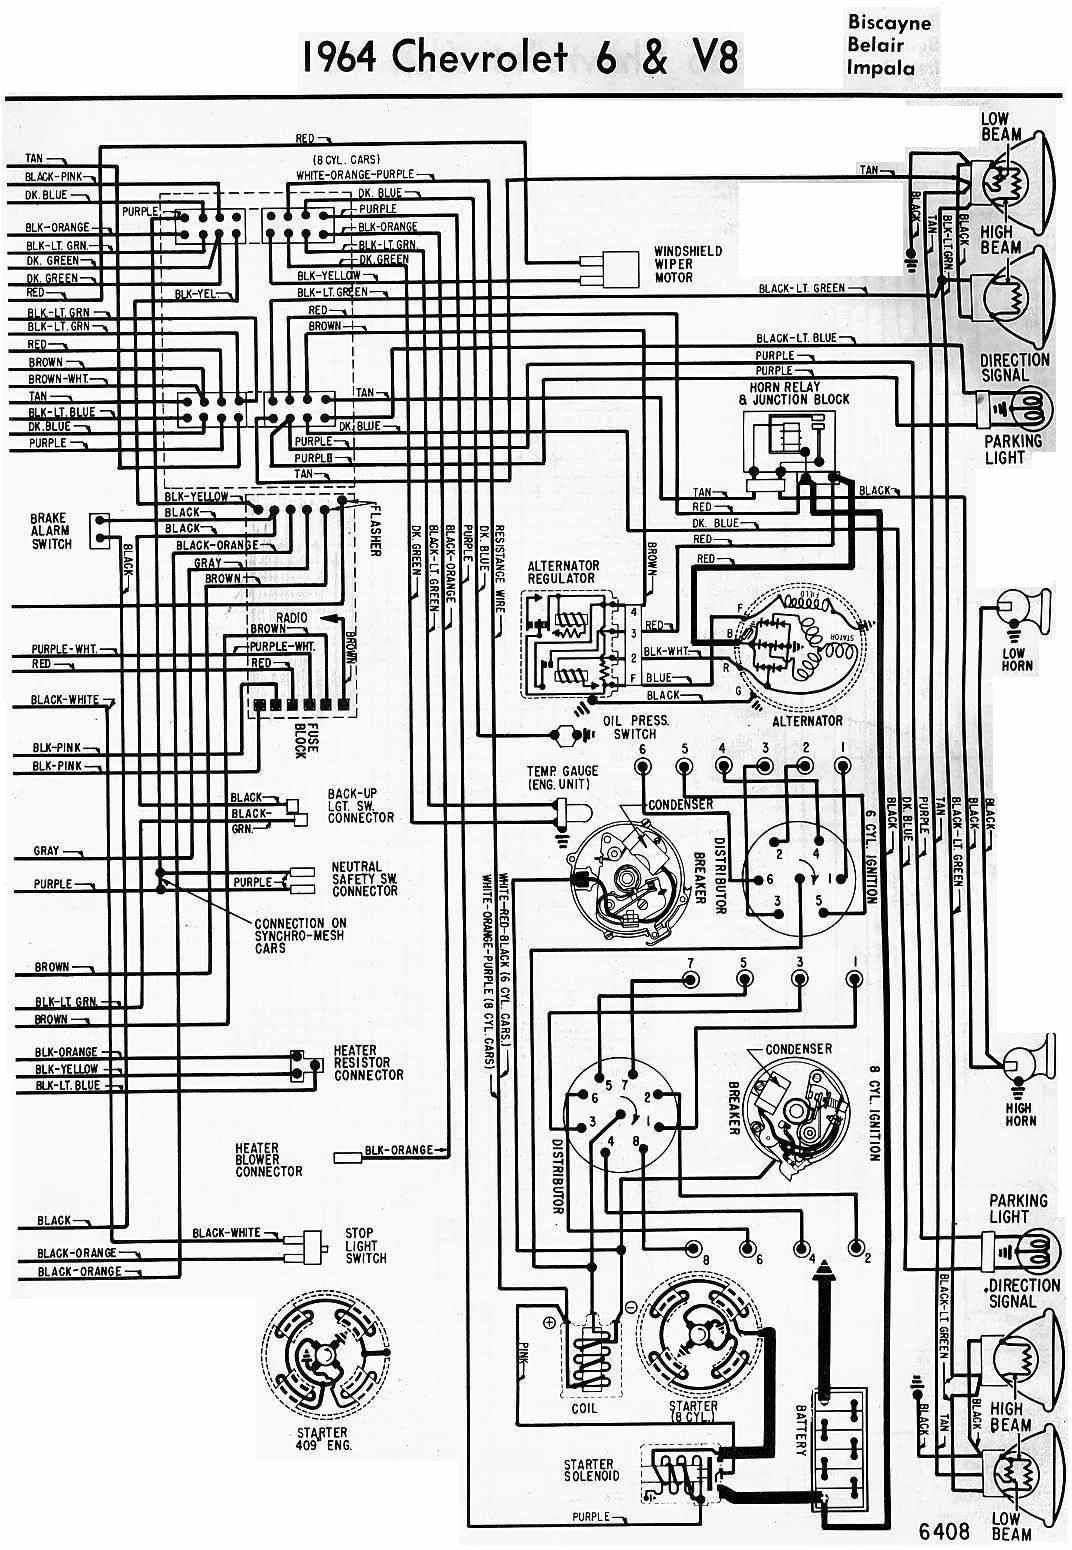 64 impala wiring diagram wiring diagrams 64 impala headlight wiring diagram [ 1072 x 1550 Pixel ]